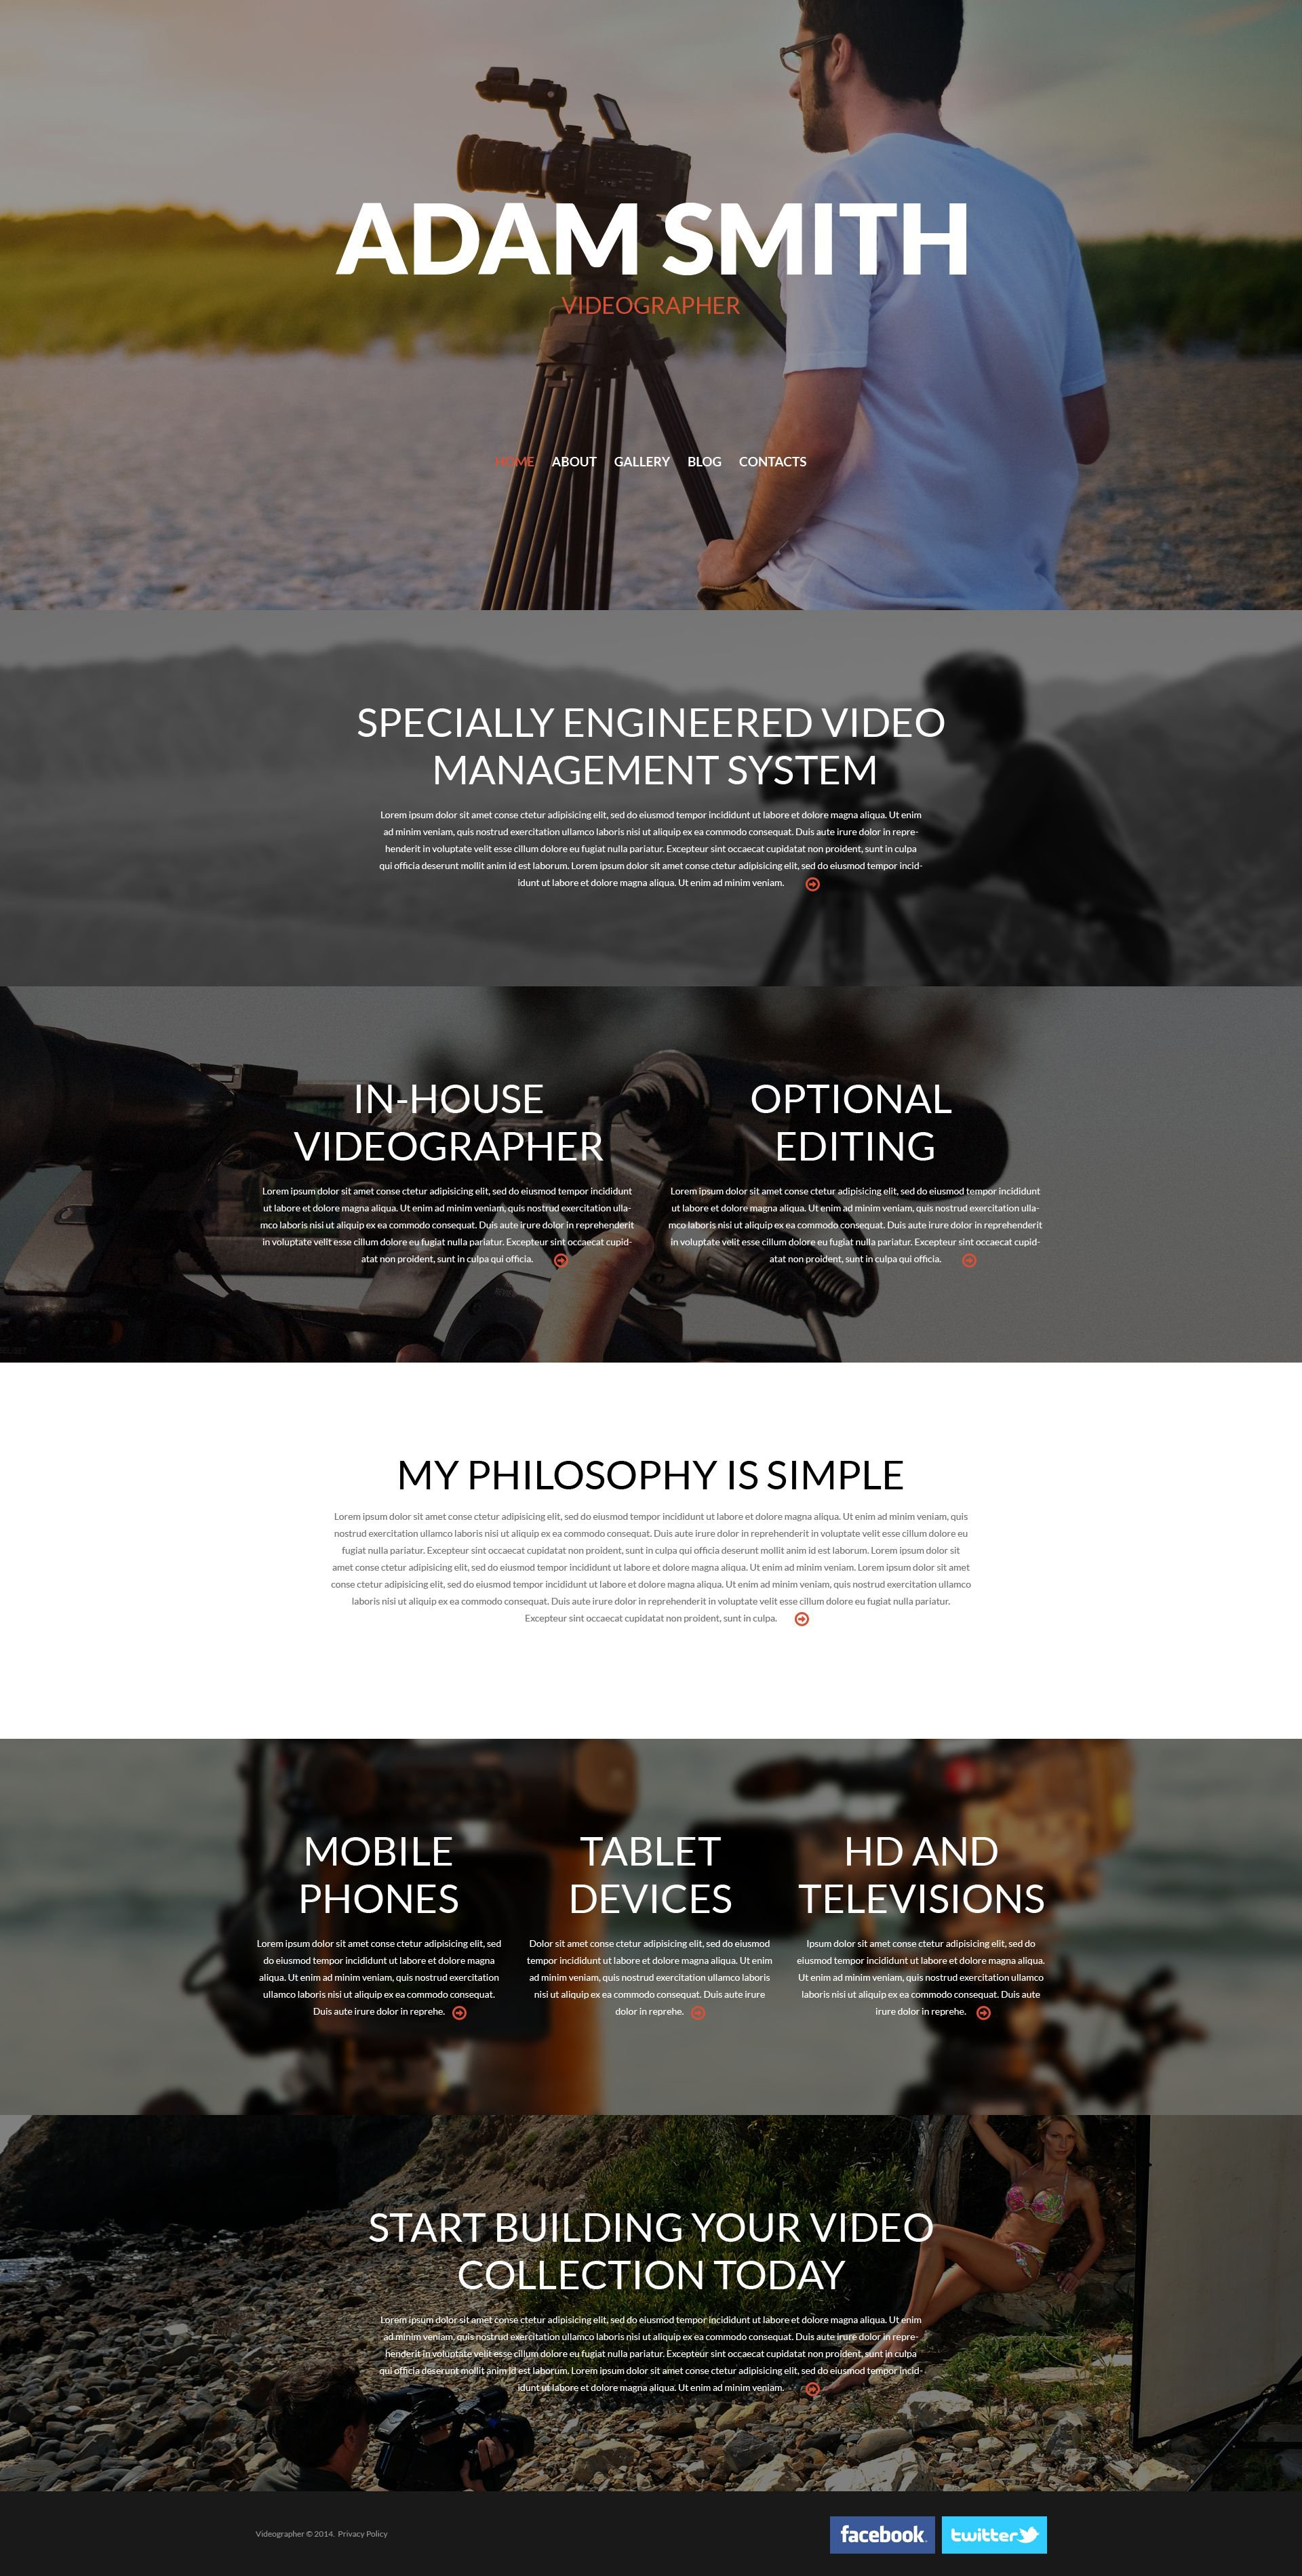 The Adam Smith Videographer WordPress Design 53017, one of the best WordPress themes of its kind (media, most popular), also known as Adam Smith videographer WordPress template, album WordPress template, page WordPress template, photos WordPress template, gallery WordPress template, portfolio WordPress template, photography WordPress template, photos WordPress template, camera WordPress template, pictures WordPress template, art gallery WordPress template, digital photographer WordPress template, cameras WordPress template, picture company WordPress template, models WordPress template, operator and related with Adam Smith videographer, album, page, photos, gallery, portfolio, photography, photos, camera, pictures, art gallery, digital photographer, cameras, picture company, models, operator, etc.